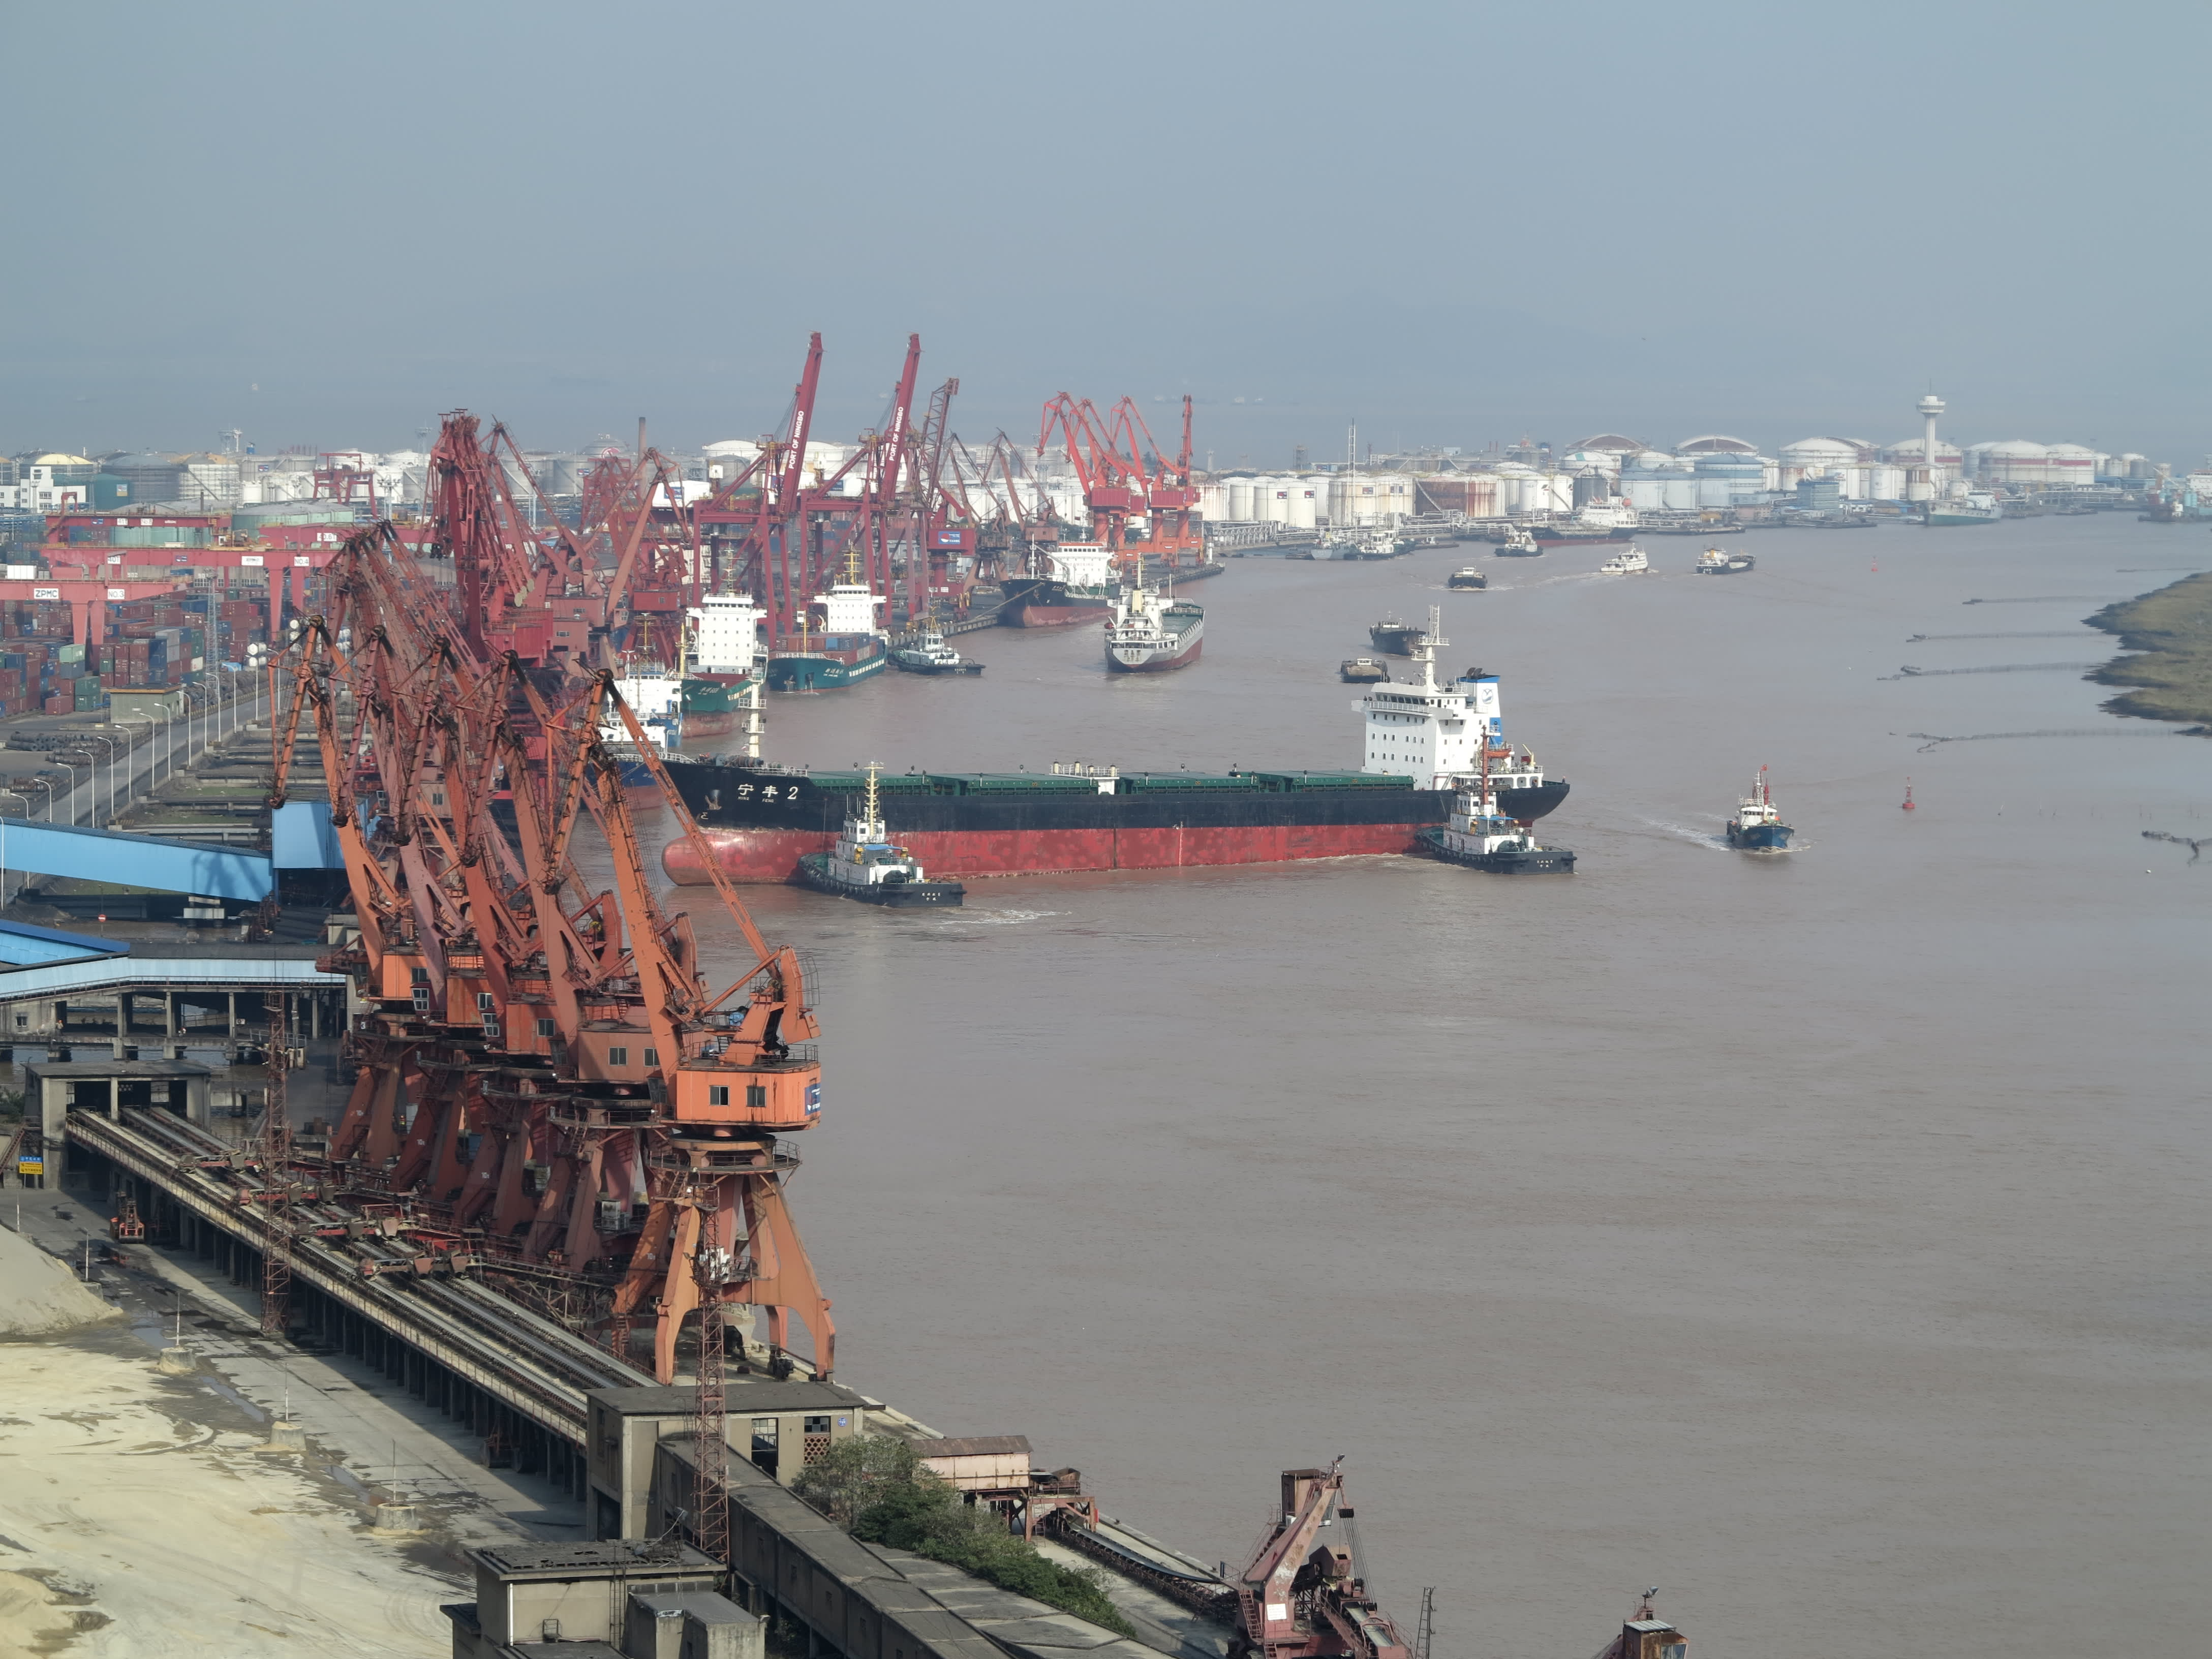 China's zero-Covid policy is so strict that it shut down a whole shipping terminal after just one case